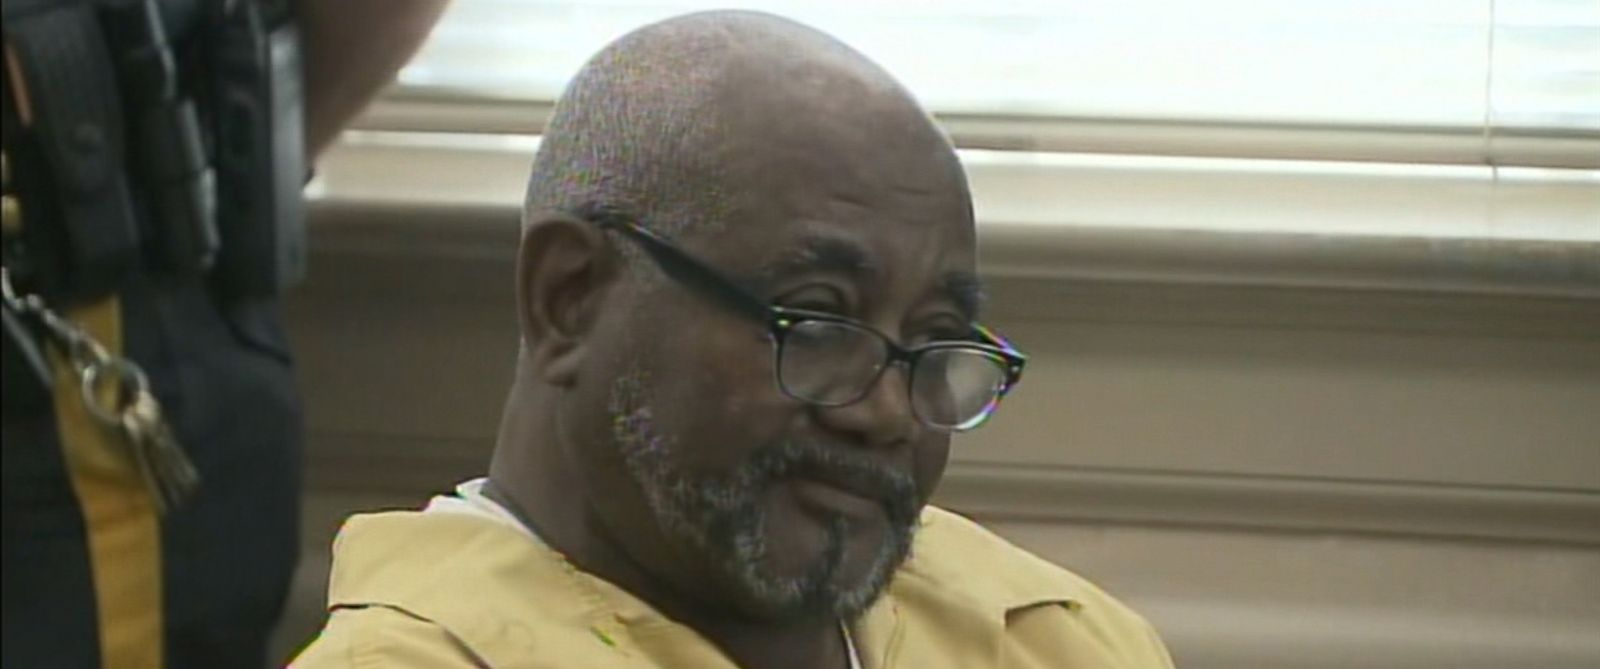 VIDEO: Hudy Muldrow Sr. , 77, faces two charges of vehicular homicide.